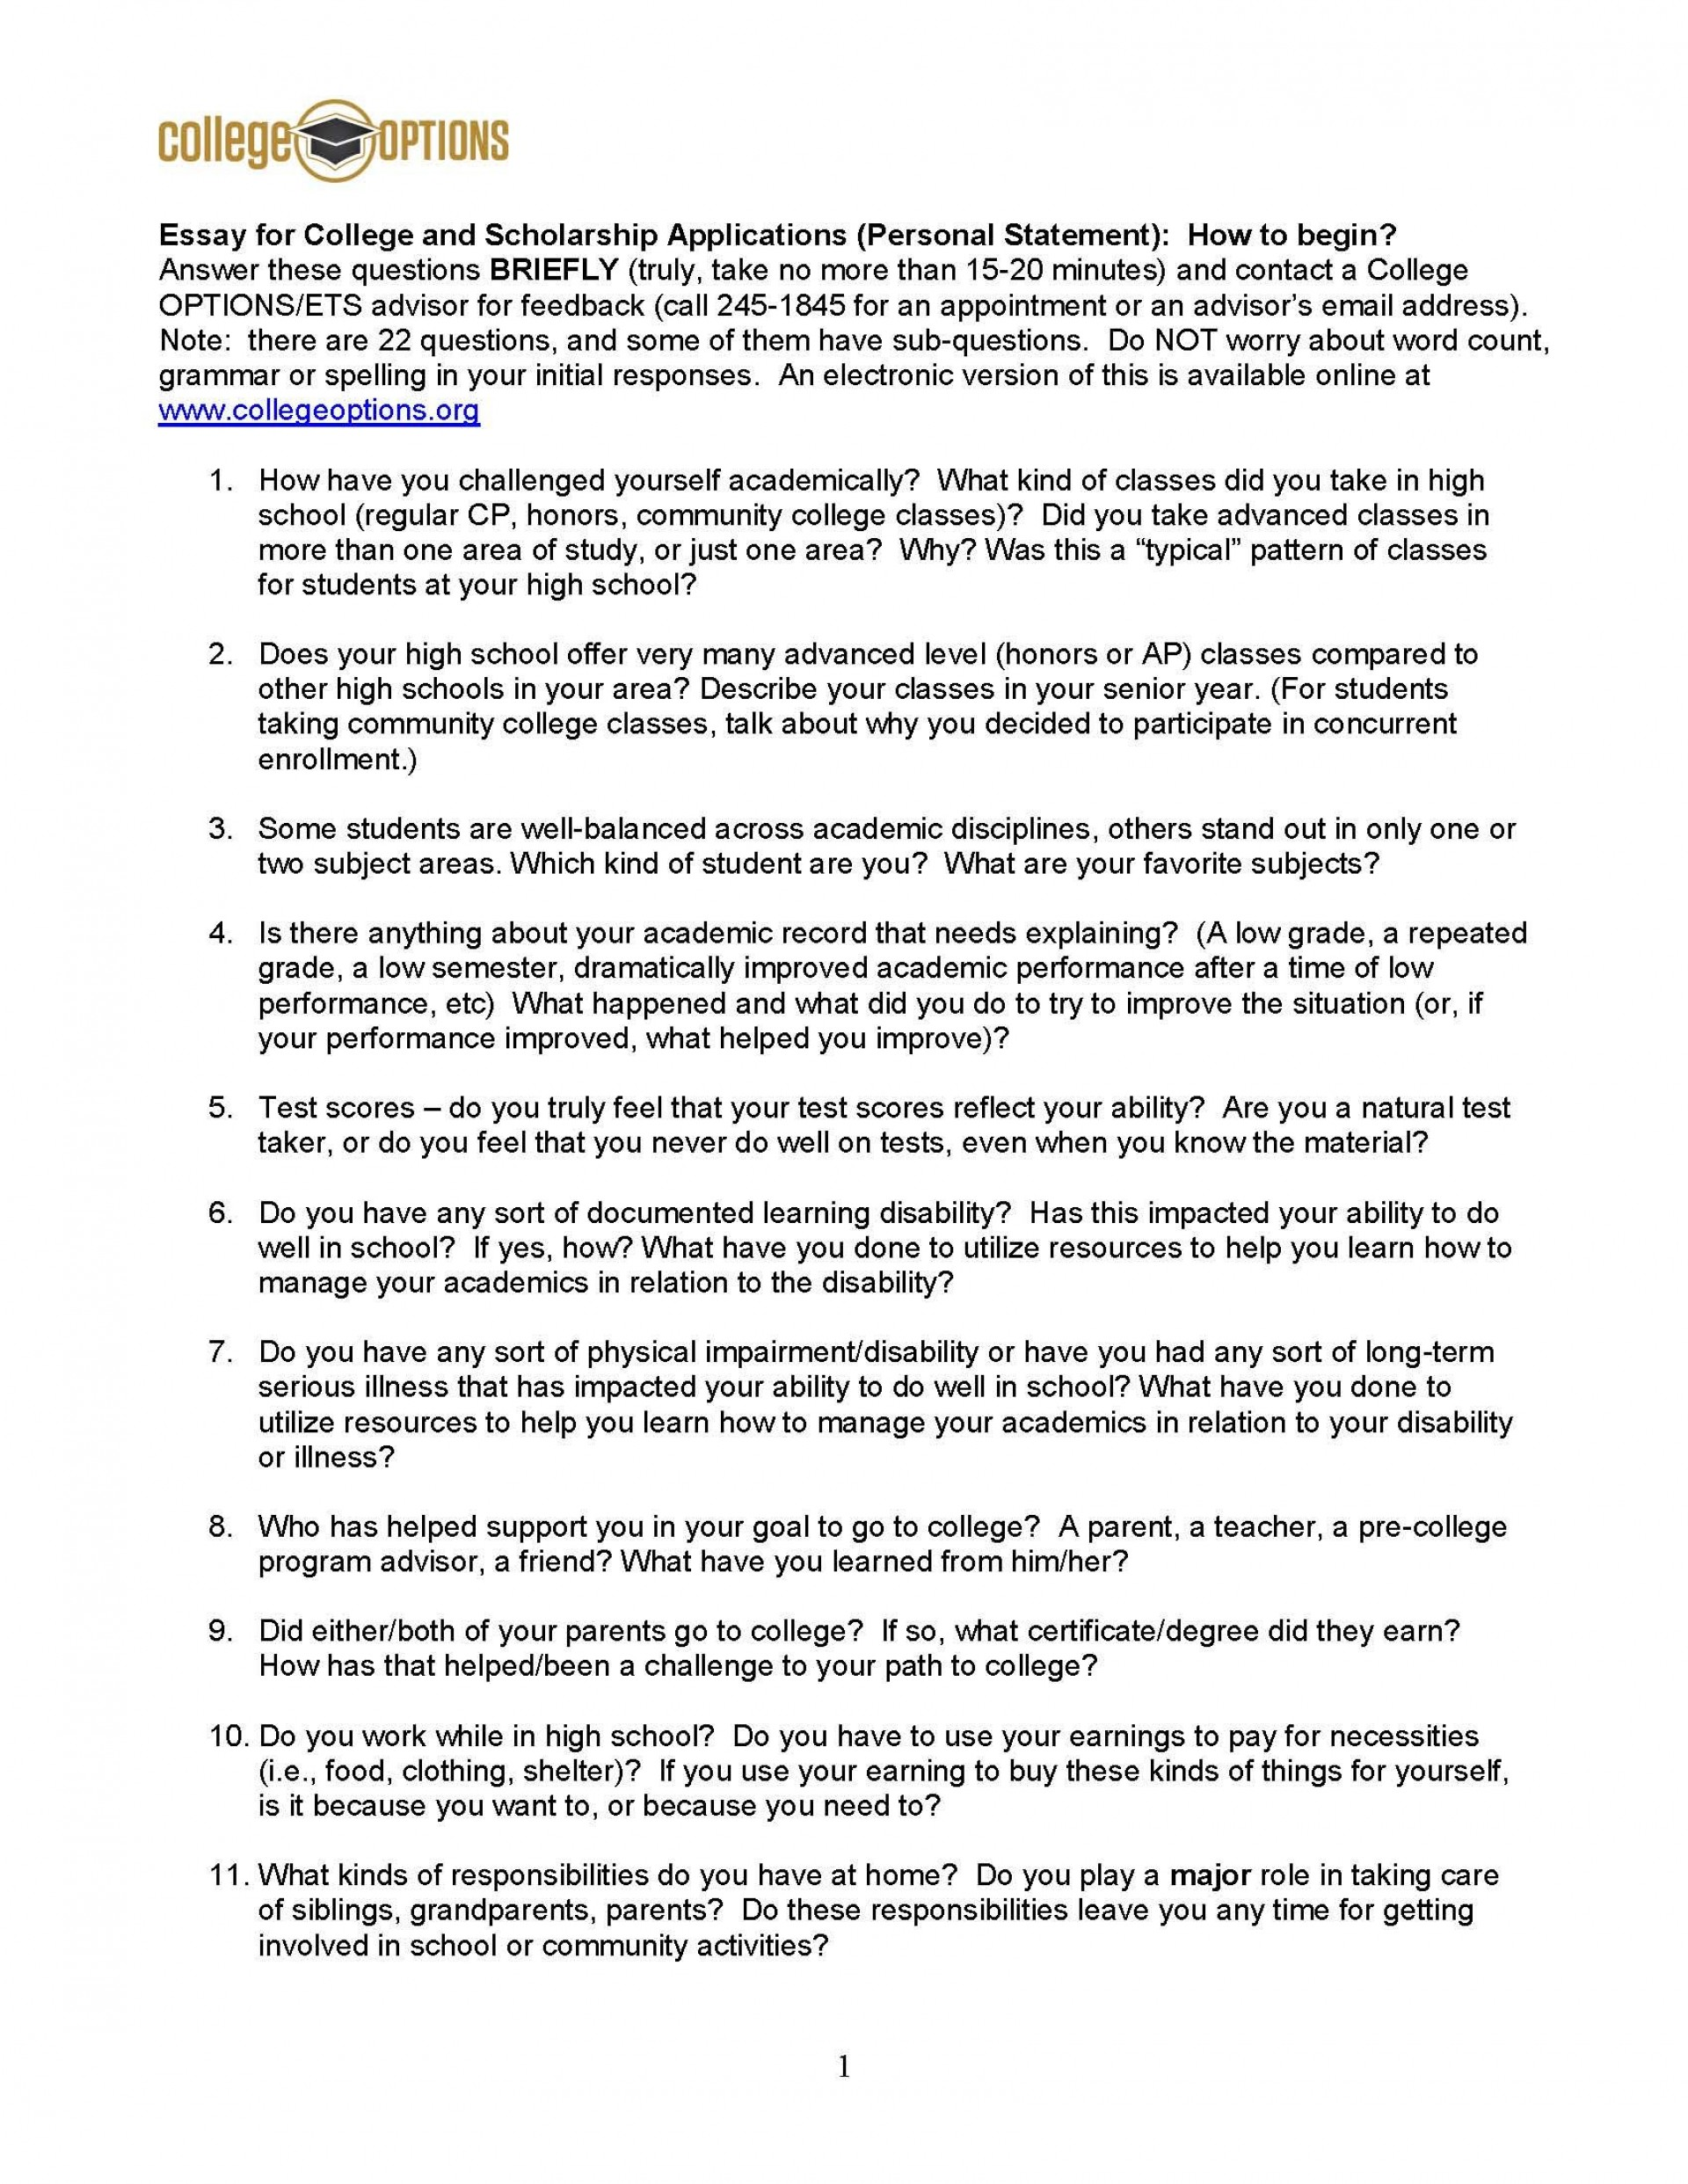 006 College Options Tips For Writing Your Scholarship Applicationy Scholarships High School Seniors In California Class Of No Short Free Example Wonderful Essay 2017 Canada 1920